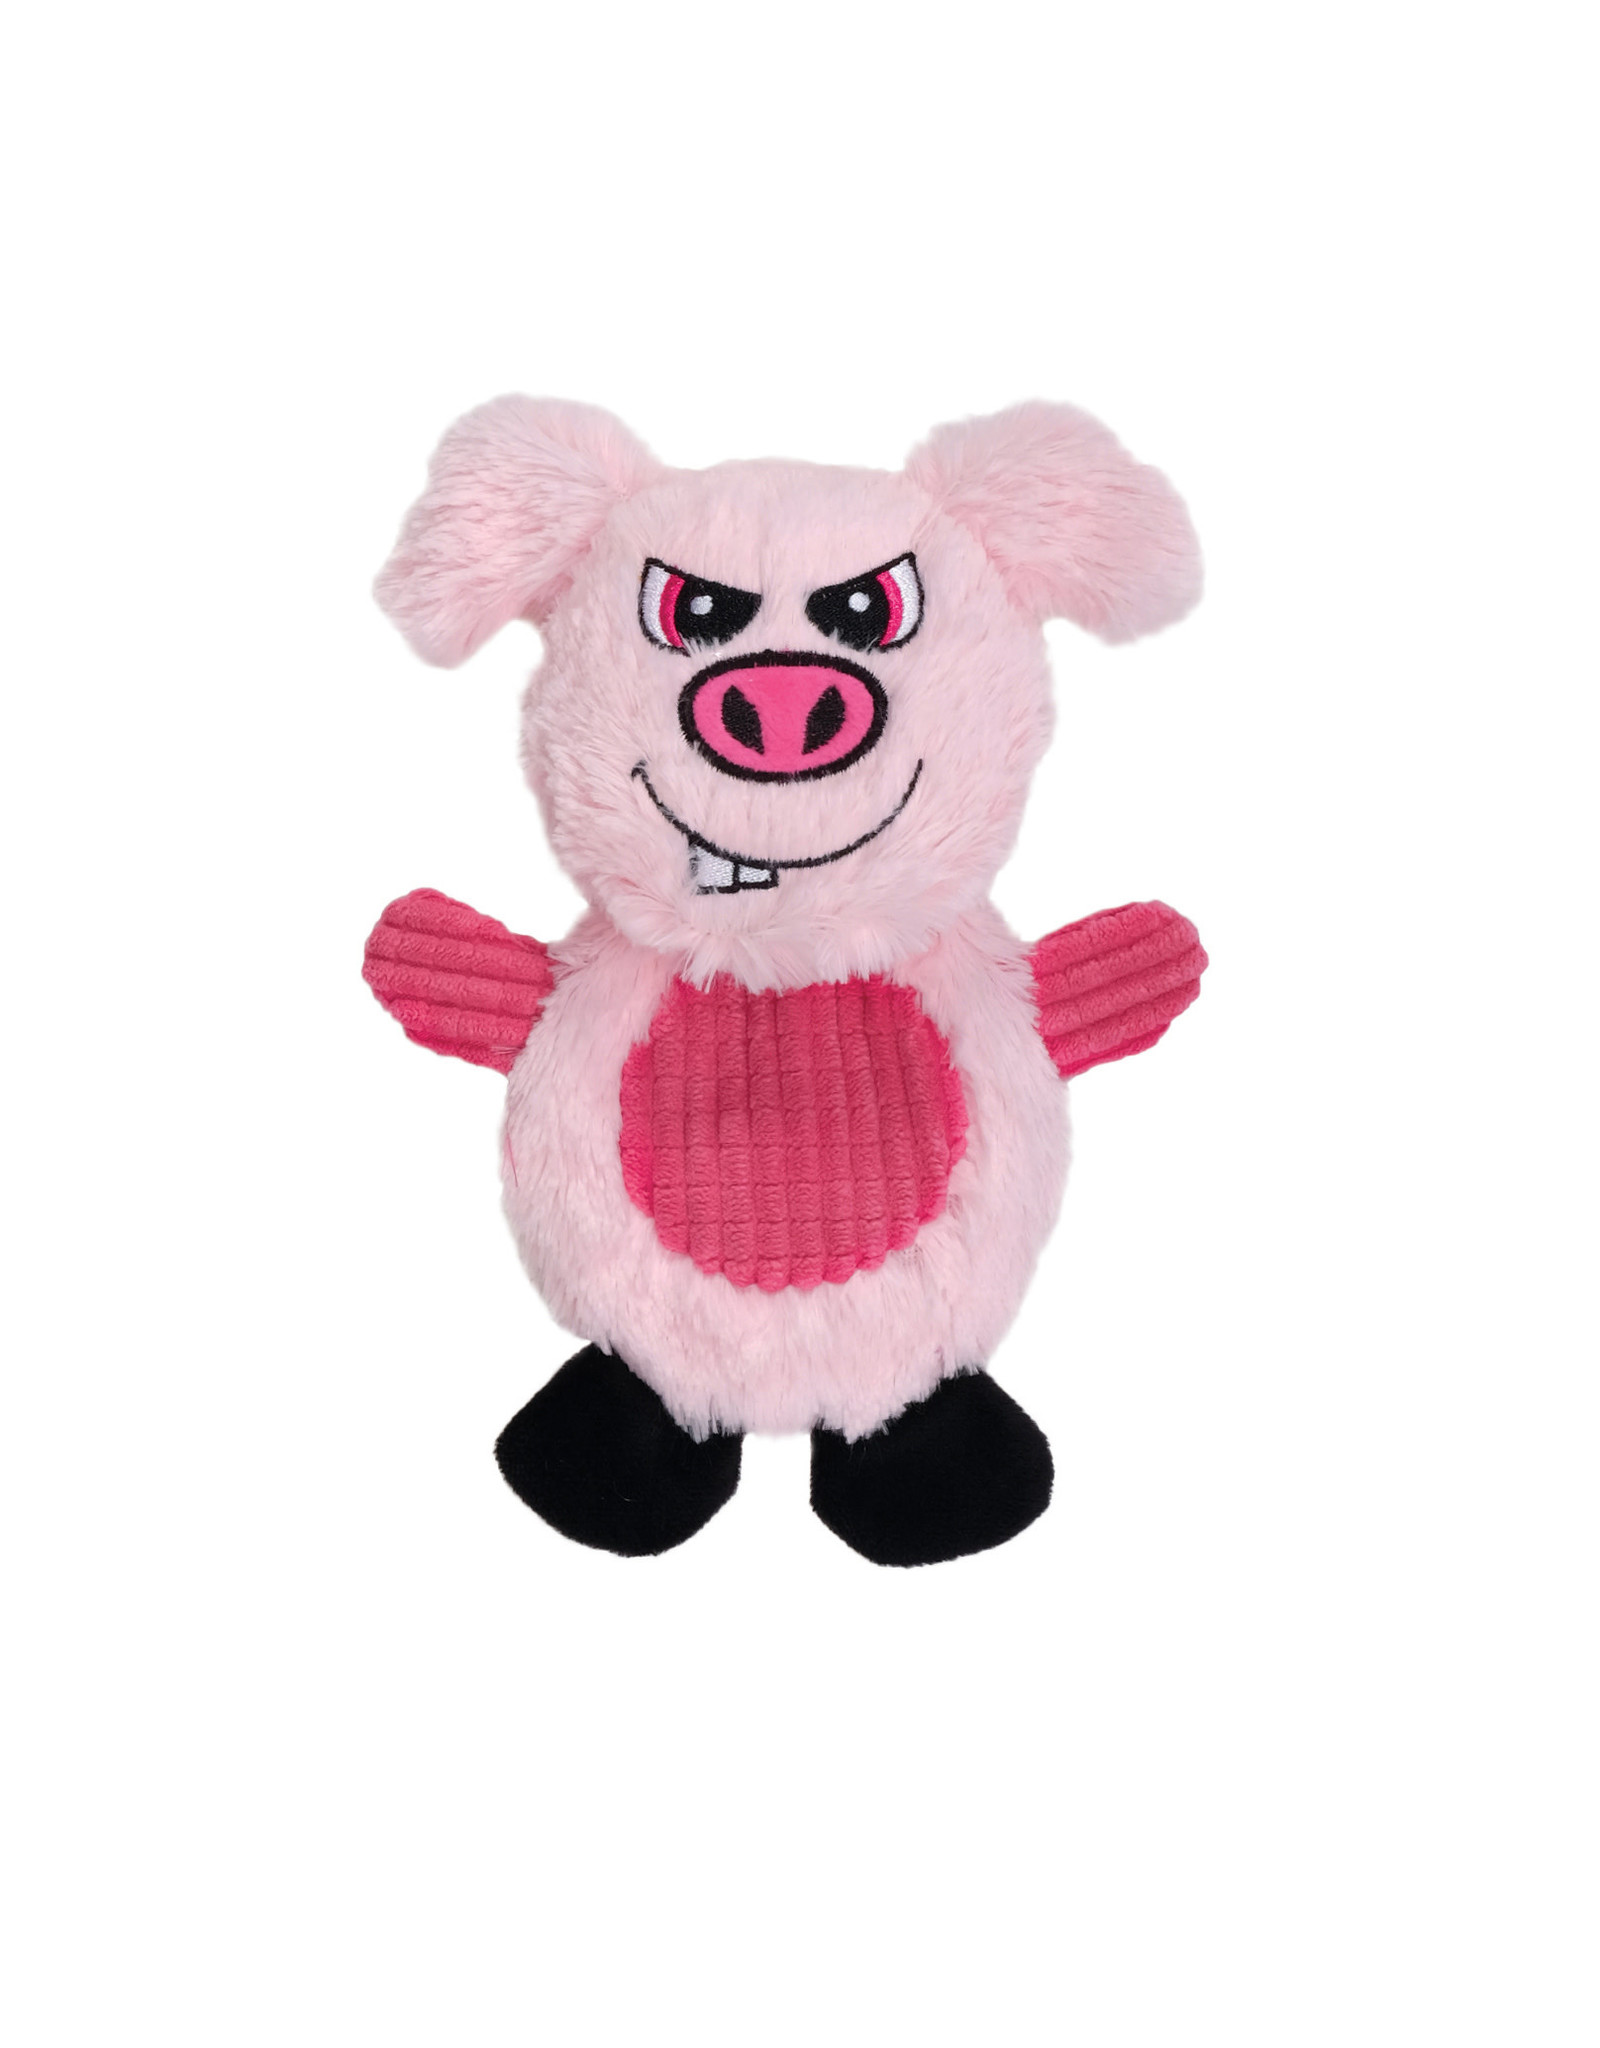 DO - Dogit Dogit Stuffies Dog Toy – Flat Friend - Pig - 19 cm